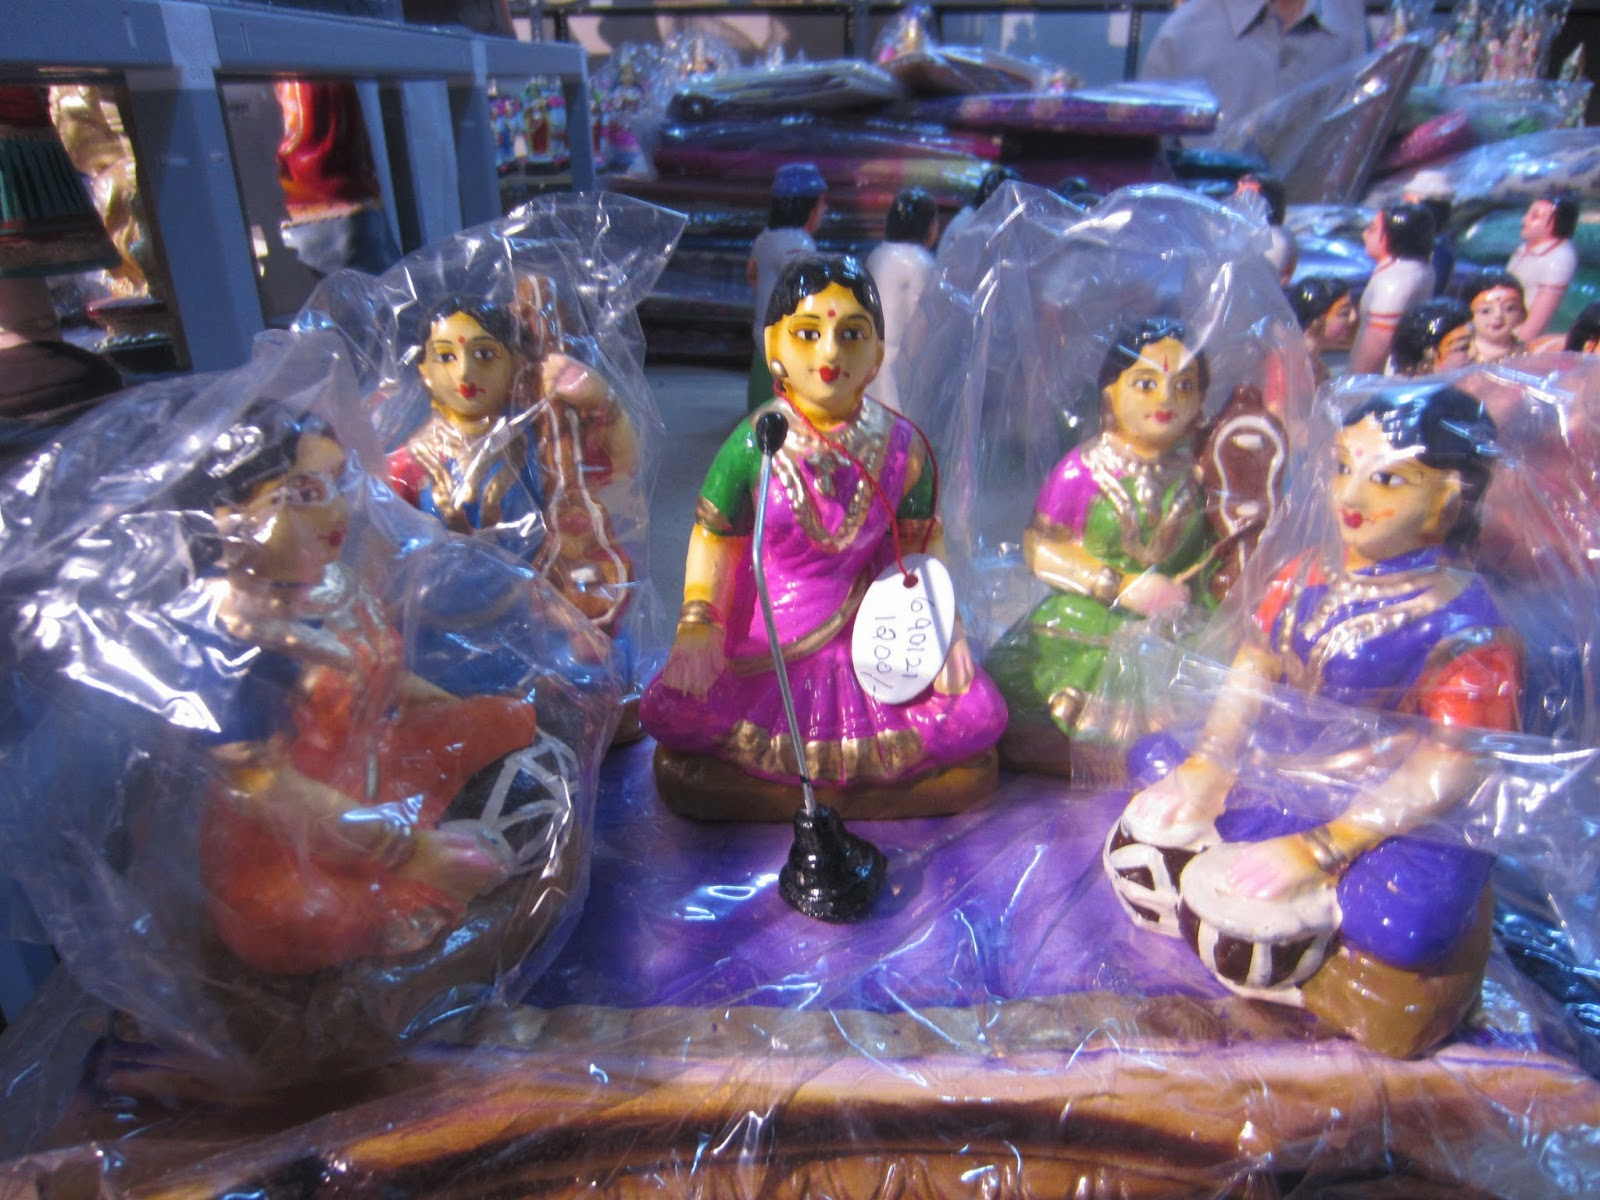 Navratri Dolls for sale in Mumbai